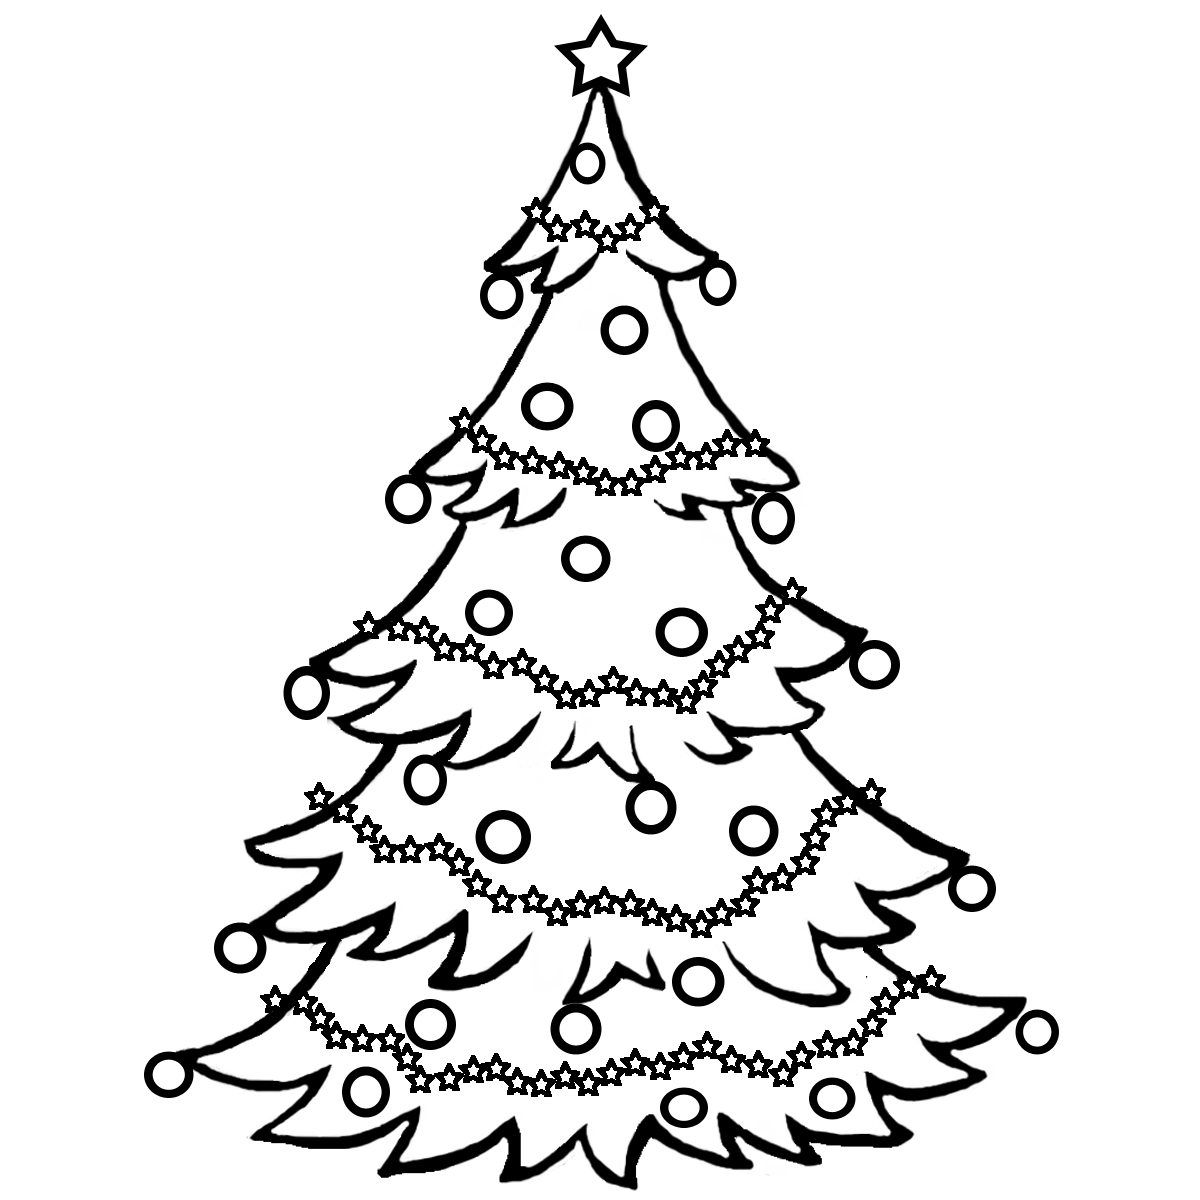 Christmas Coloring Christmas Tree Coloring Page Free Christmas Tree Coloring Page Christmas Tree Coloring Page Christmas Tree Drawing Christmas Tree Clipart